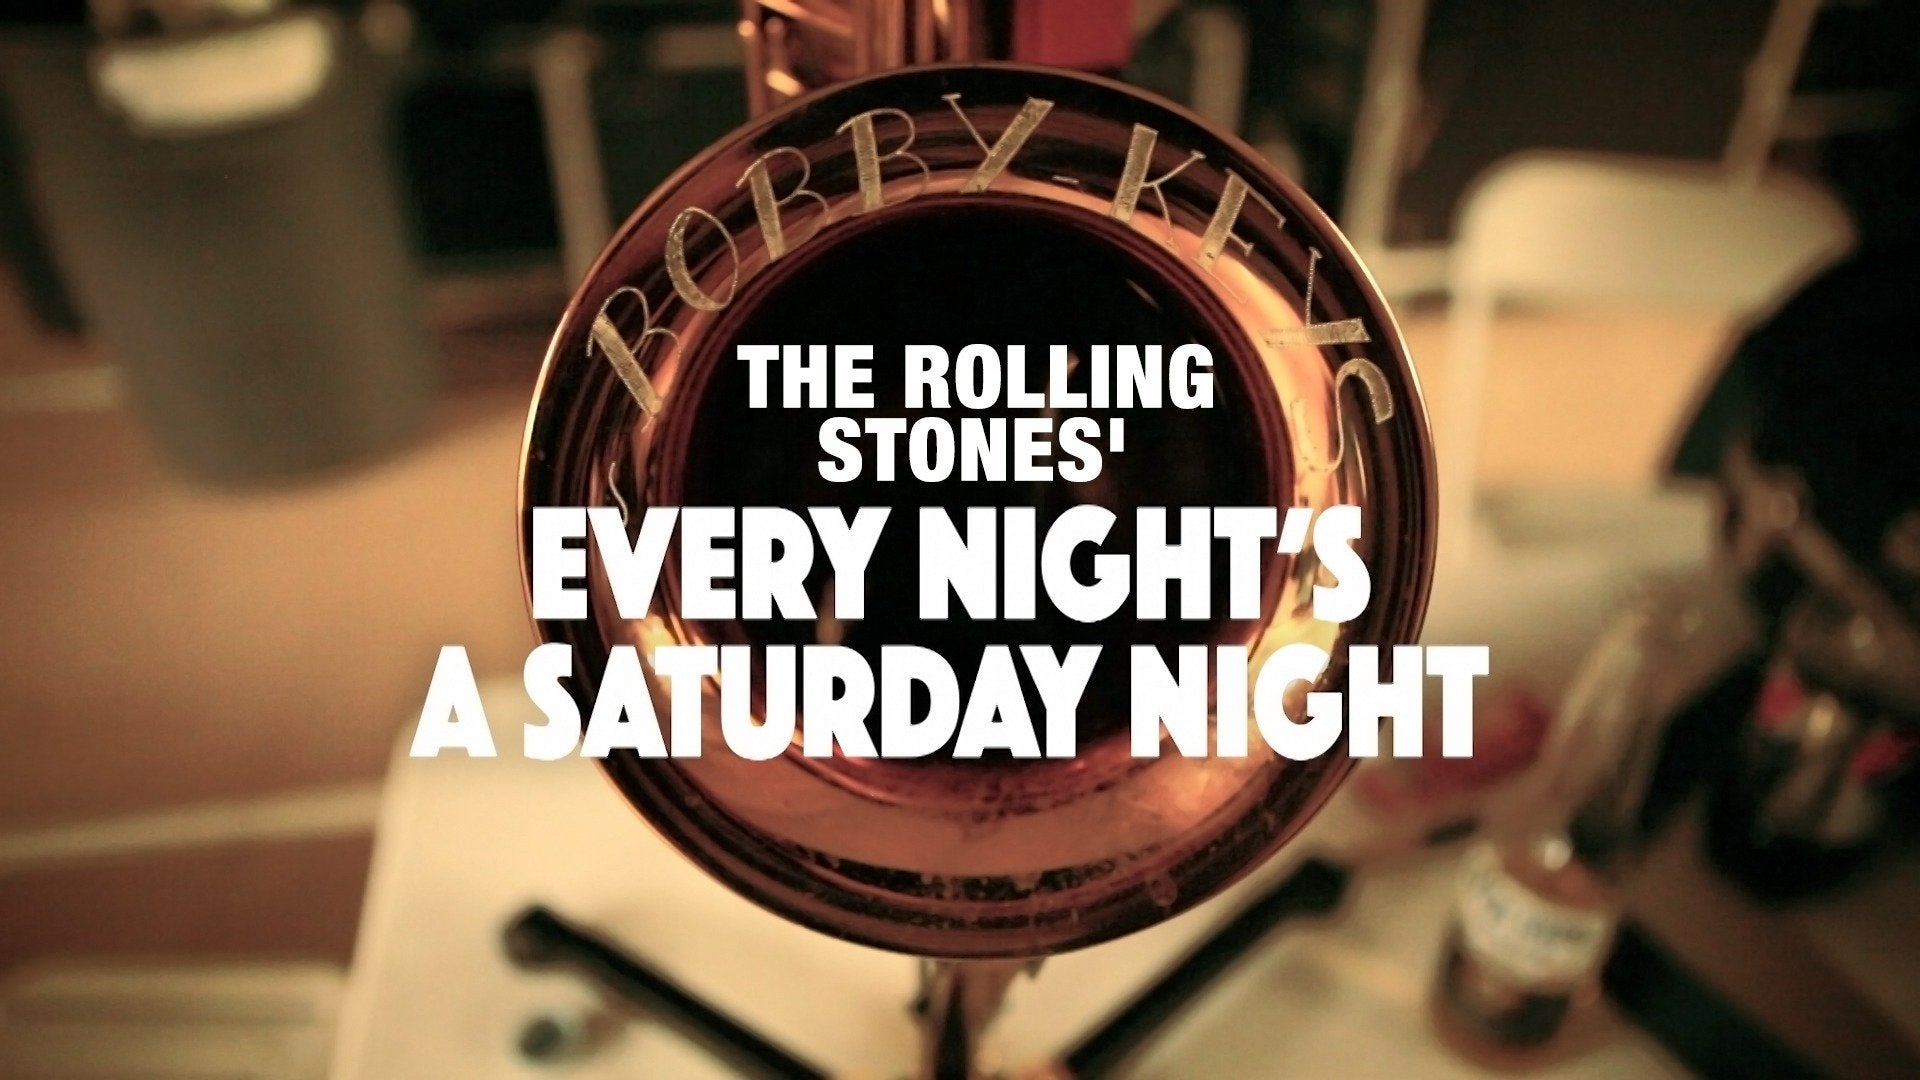 The Rolling Stones' Bobby Keys: Every Night's a Saturday Night